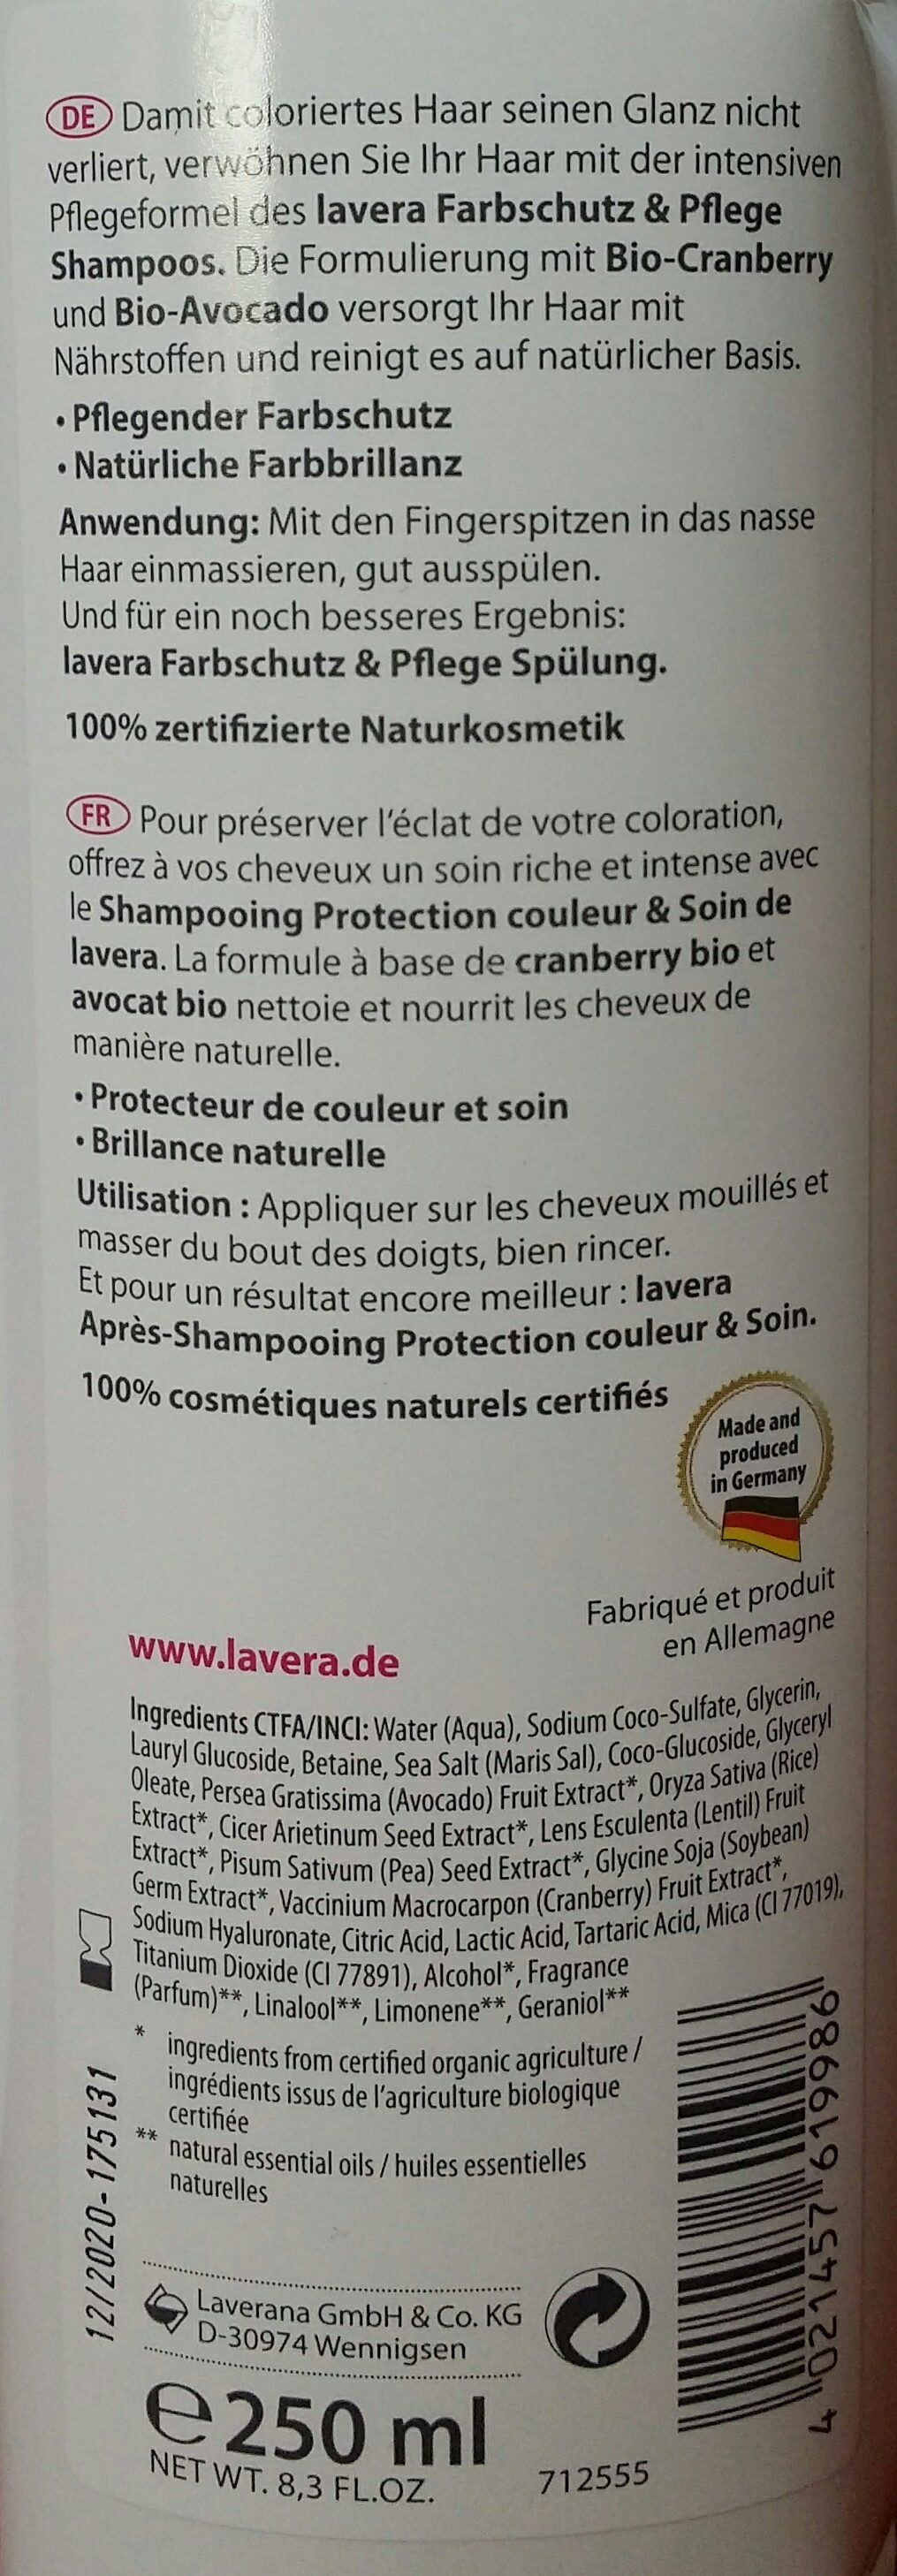 Shampooing protection couleur & soin - Ingredients